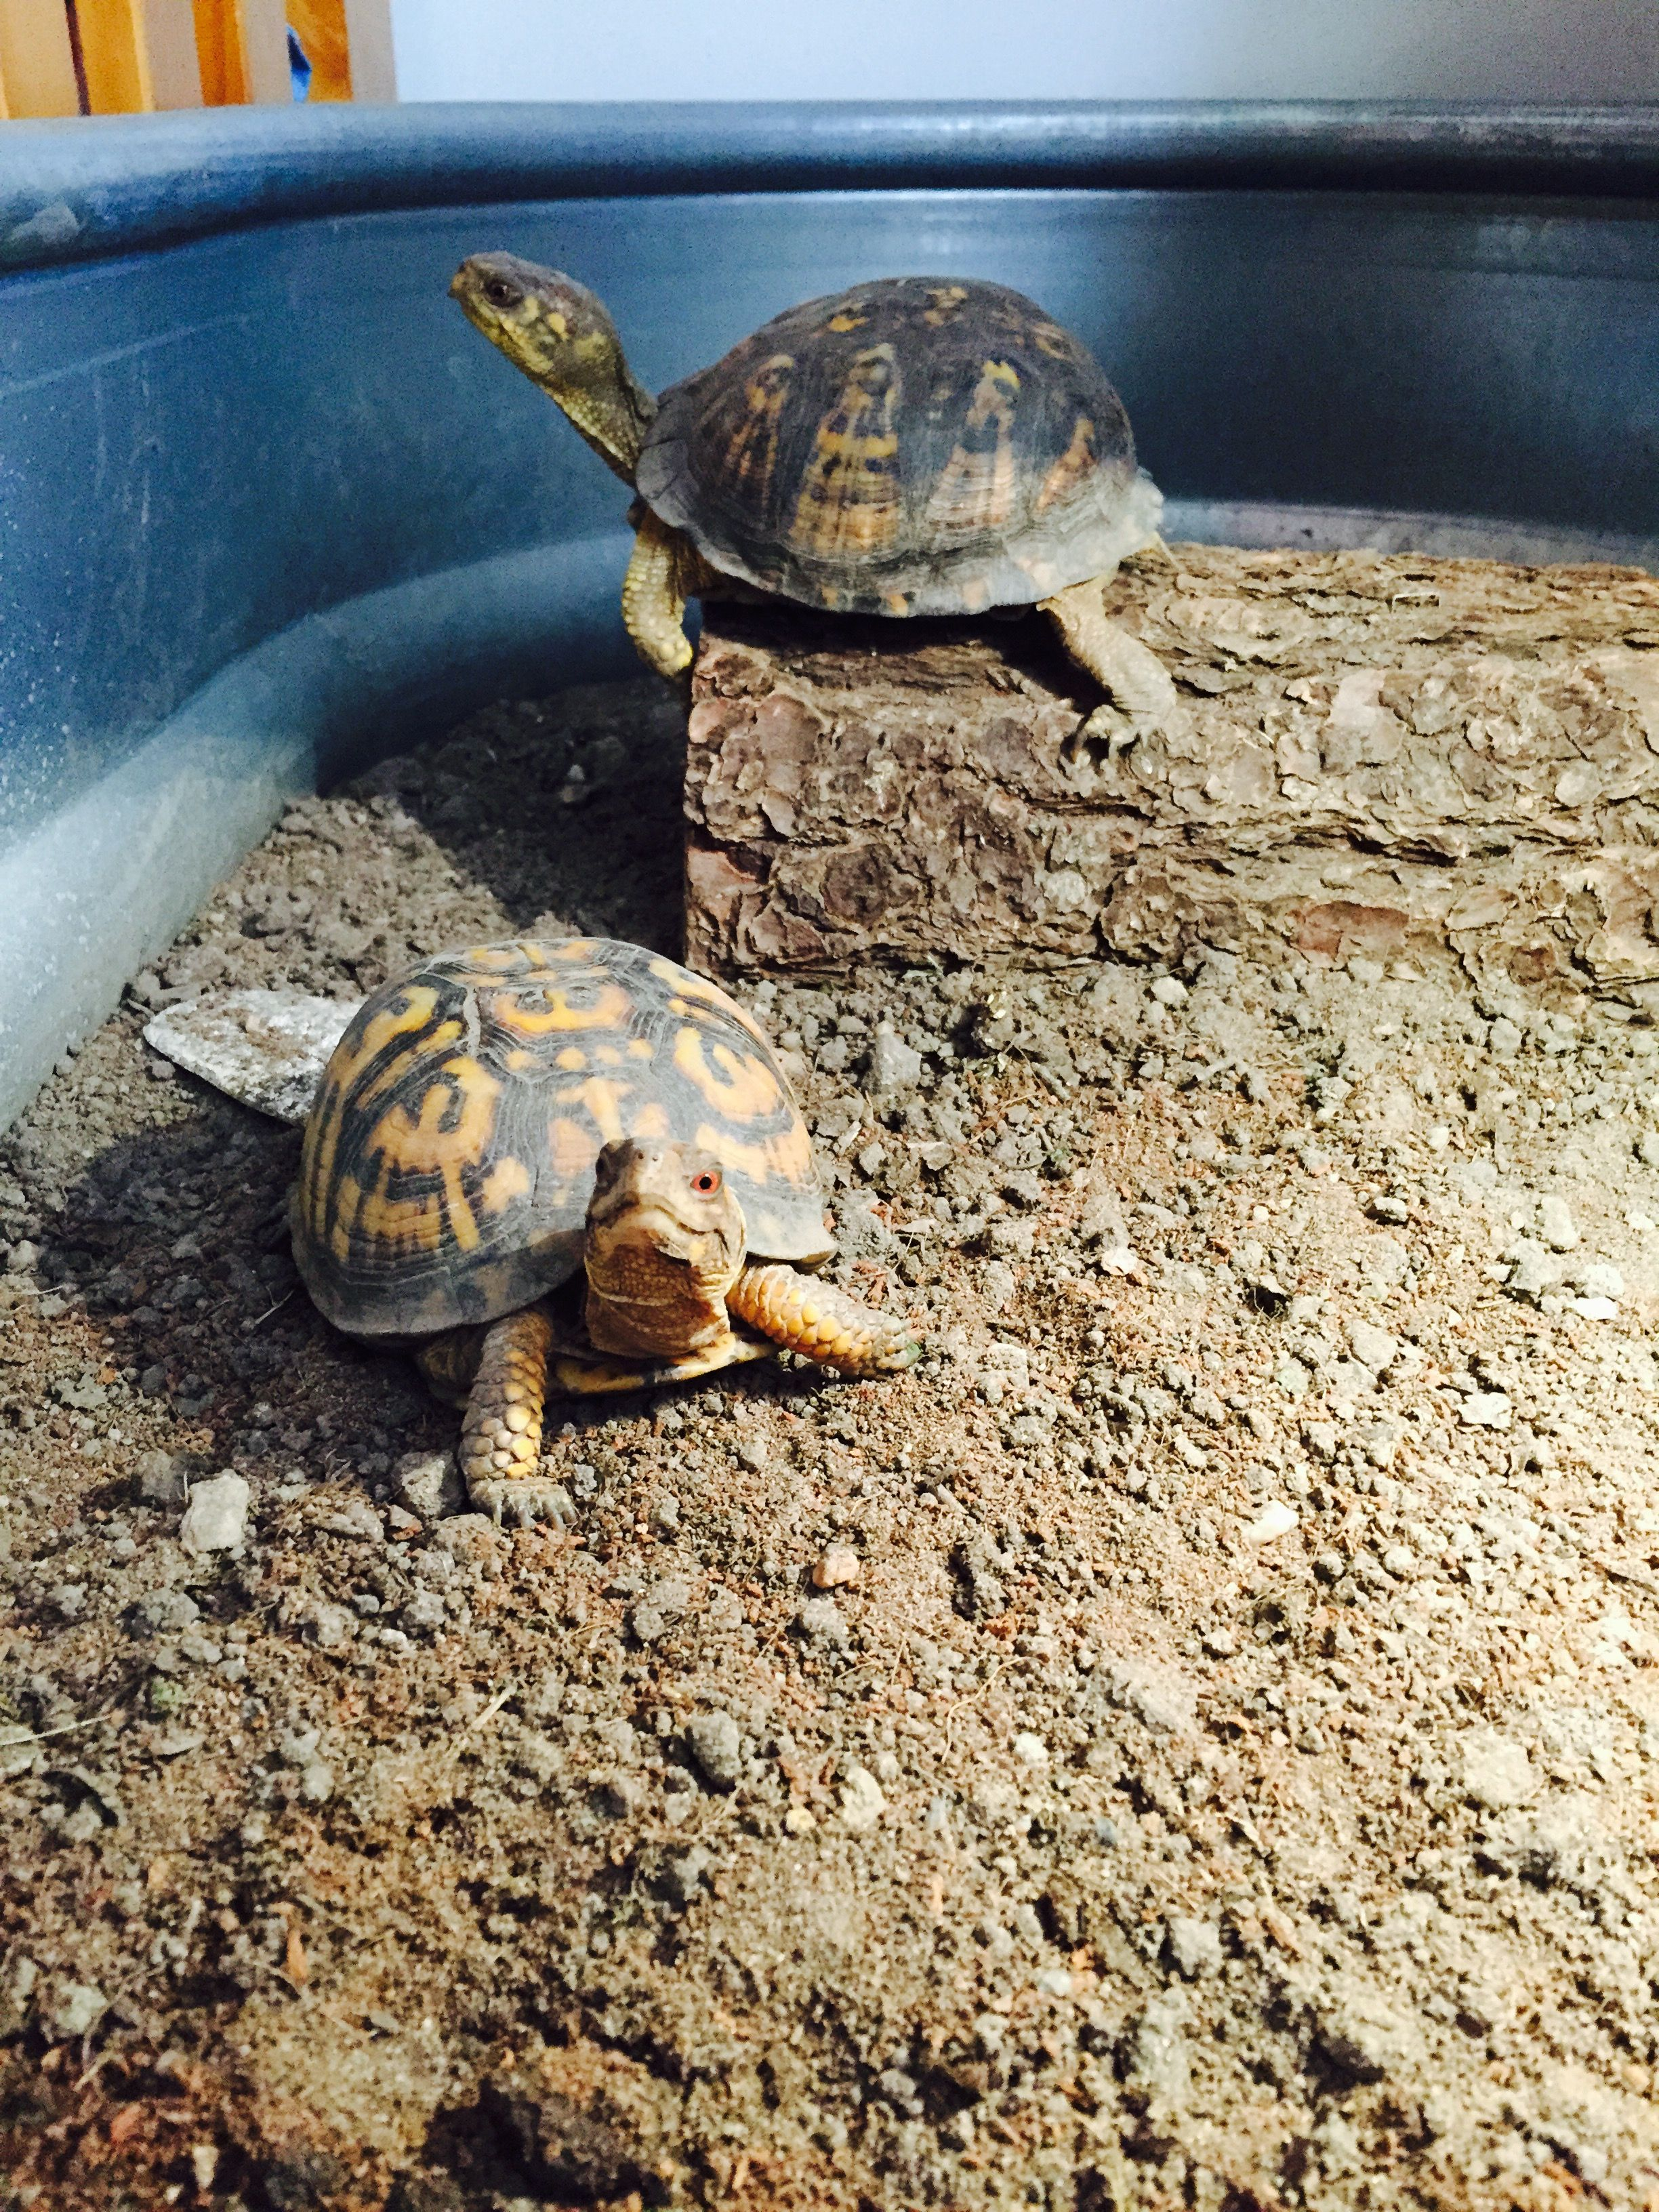 Pin by Victoria 🌟 on little rock | Pet turtle, Small pets ...